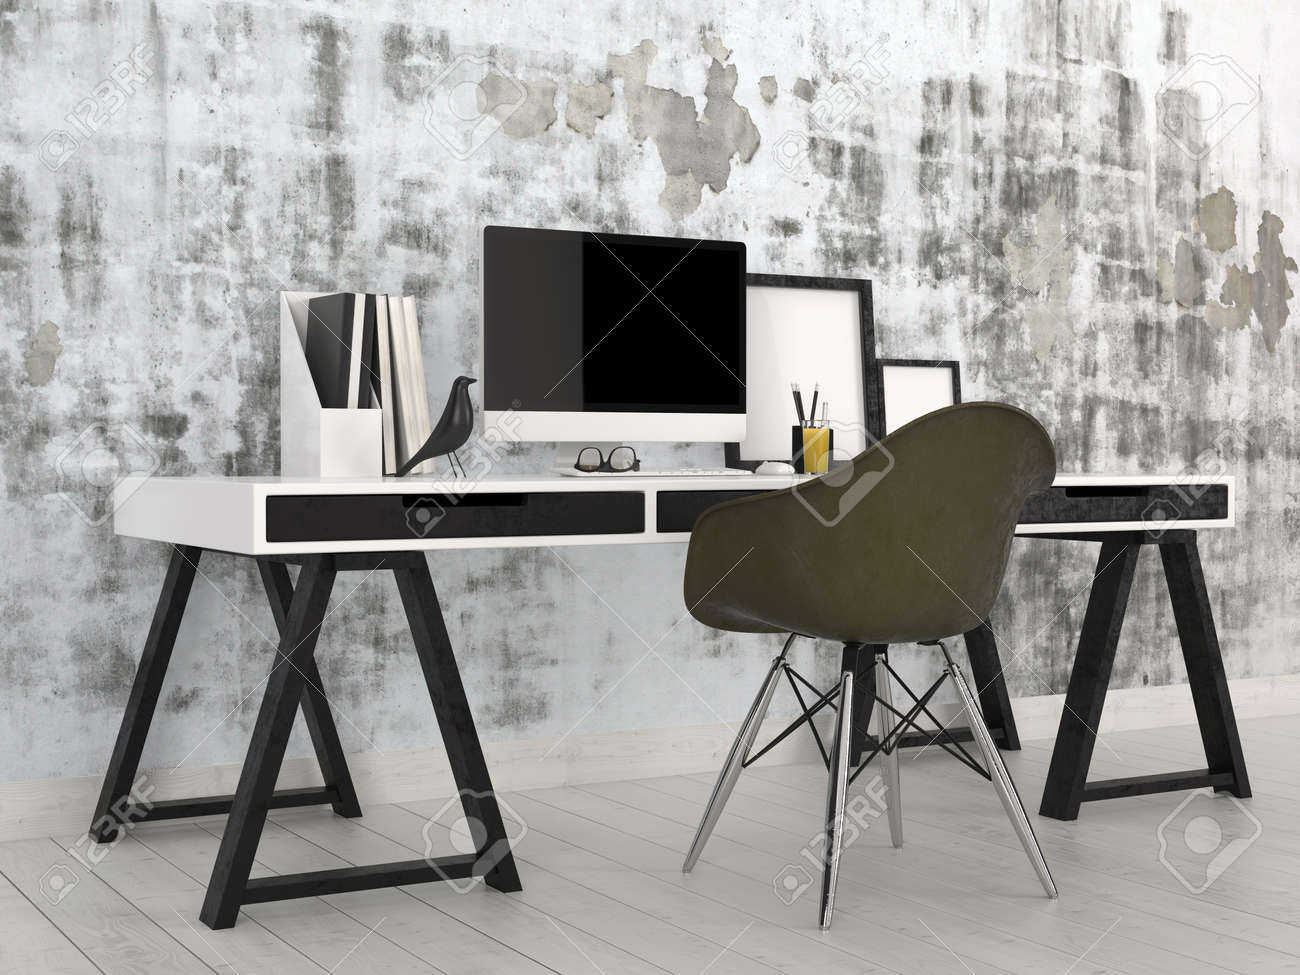 trestle office desk. Stock Photo - Stylish Modern Black And White Office Interior With A Trestle Desk Desktop Computer, Files Frames Against An Abstract Grey Wall C